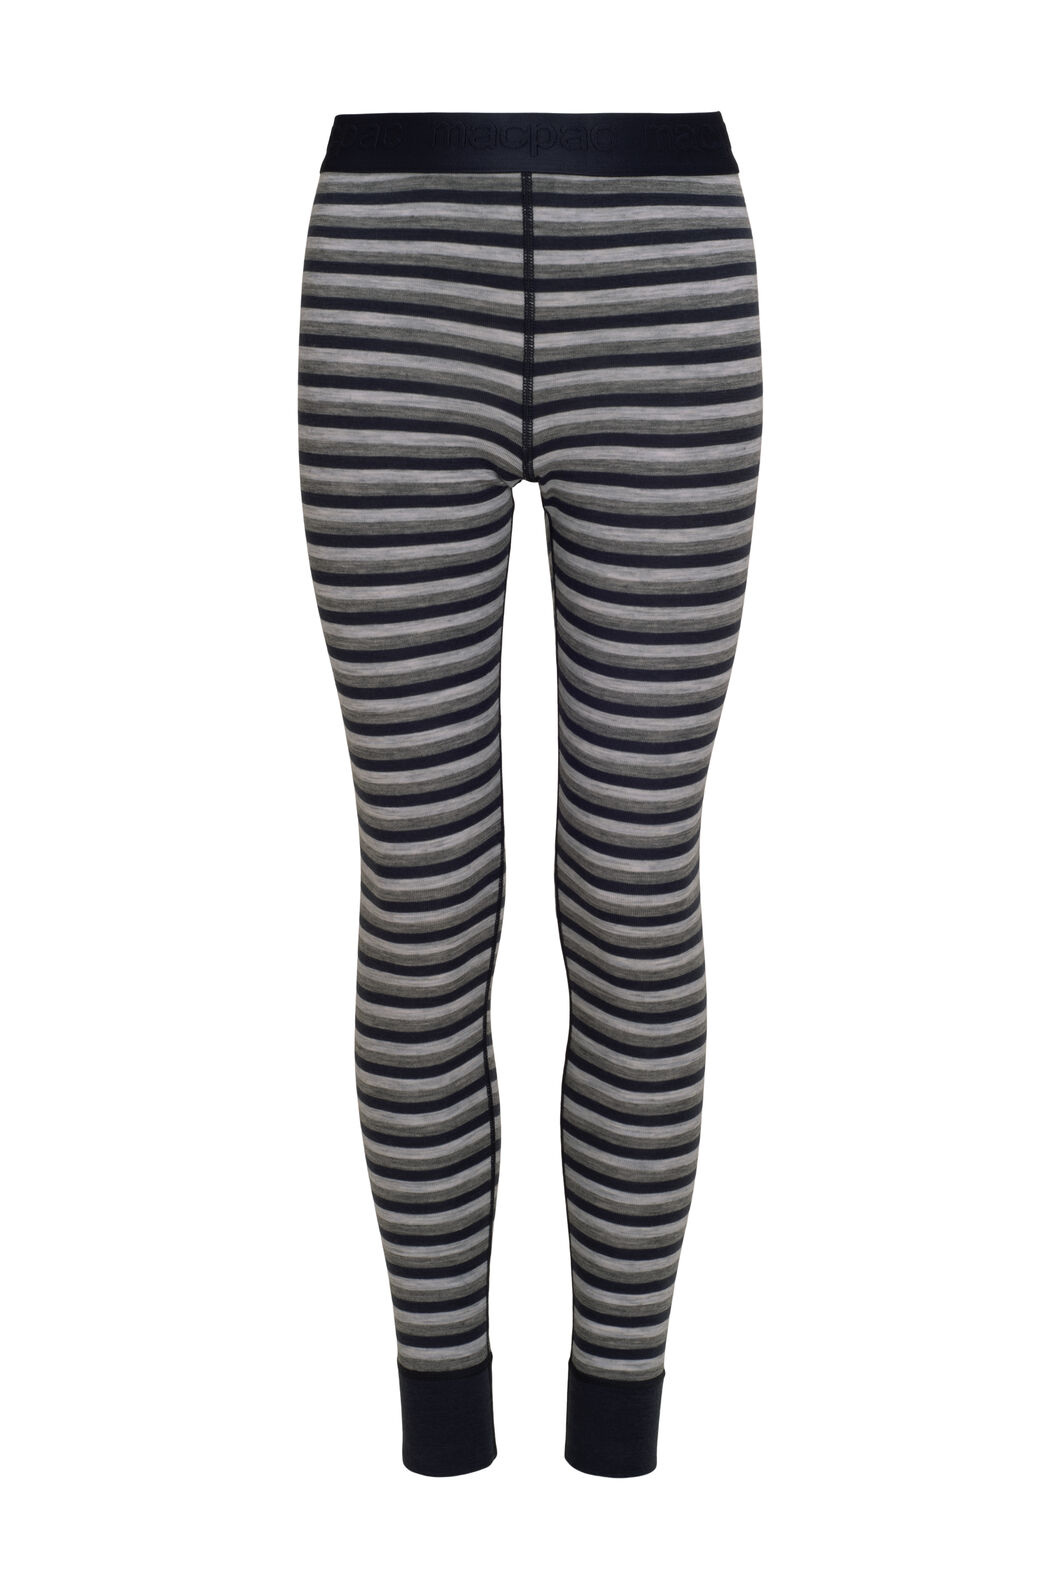 Macpac 220 Merino Long Johns — Kids', Grey/Navy Stripe, hi-res